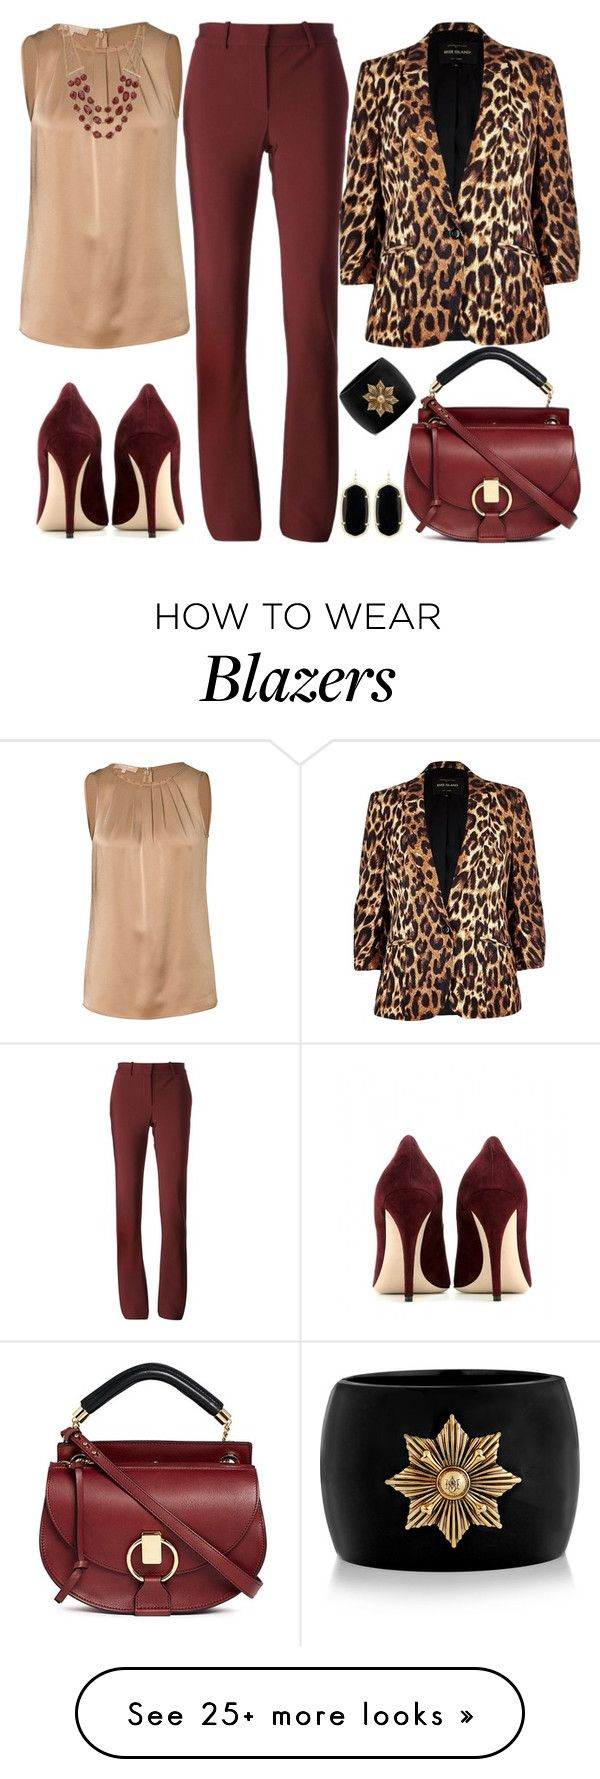 """Untitled #2681"" by emmafazekas on Polyvore featuring Lanvin, Michael Kors, River Island, Miu Miu, Lucky Brand, Chloé, Kendra Scott and Alexander McQueen"